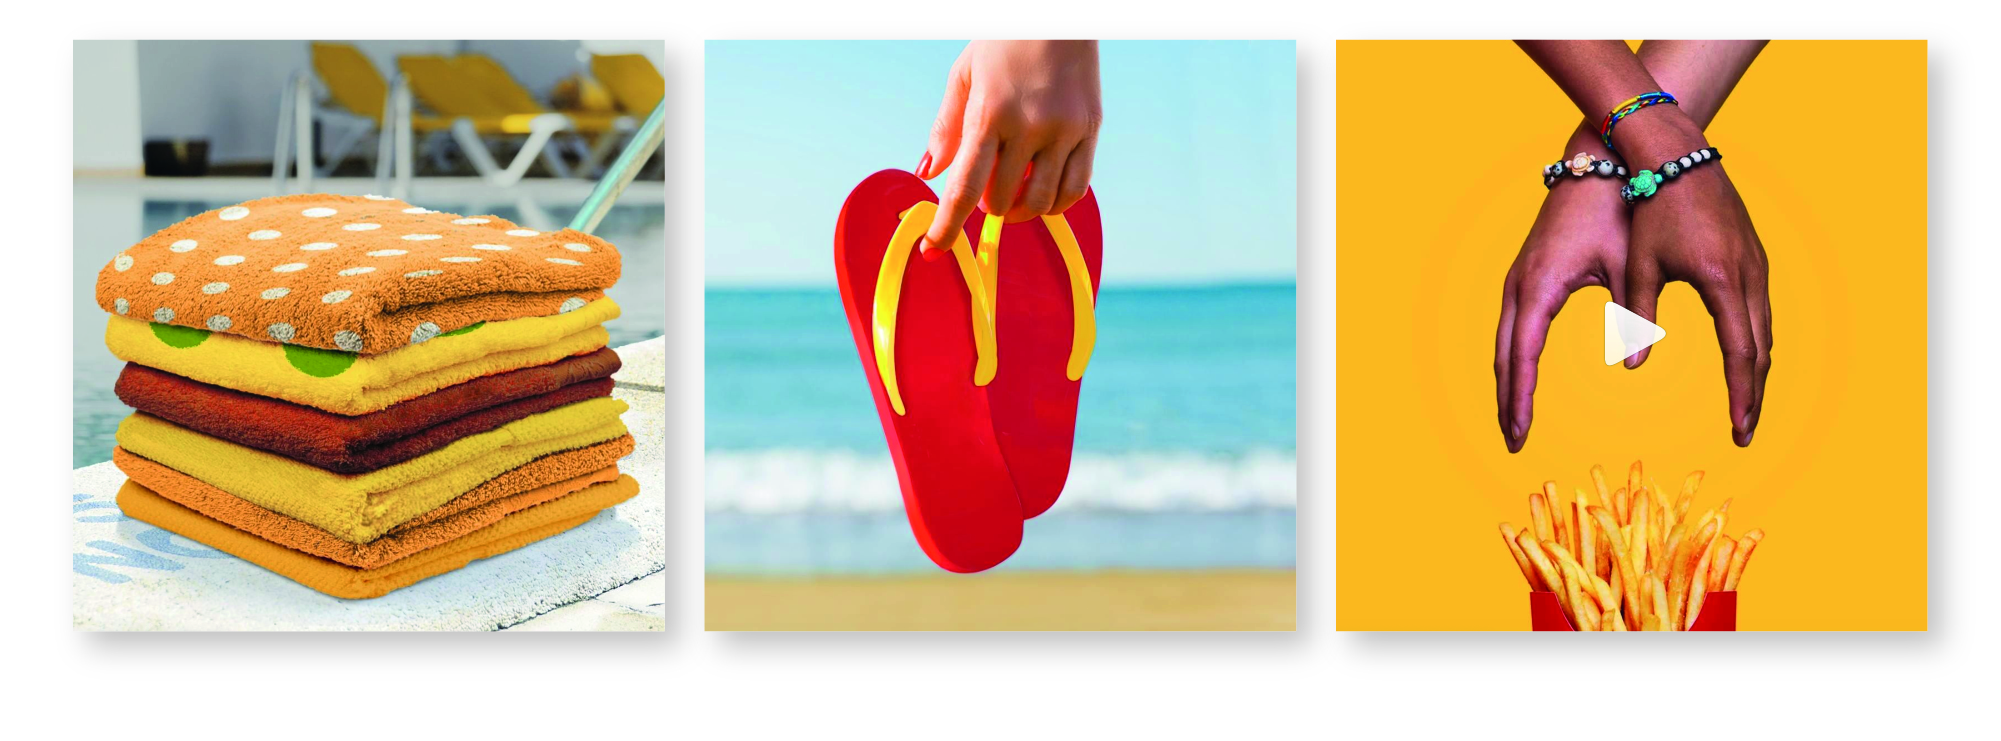 McDonald's instagram brand values for your brand strategy